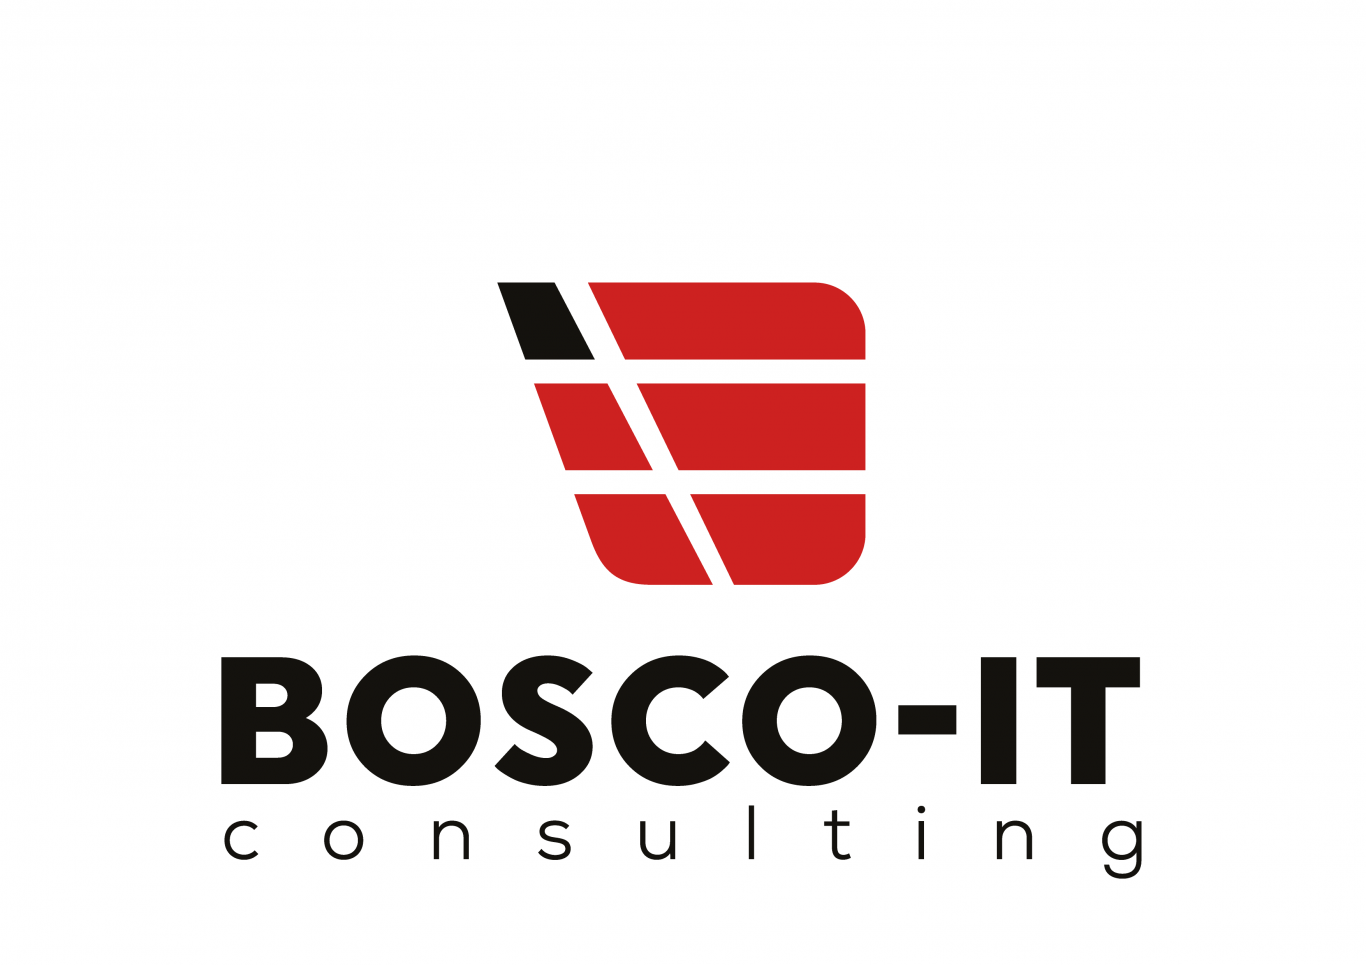 https://webshopjogasz.hu/BOSCO-IT CONSULTING Bt.